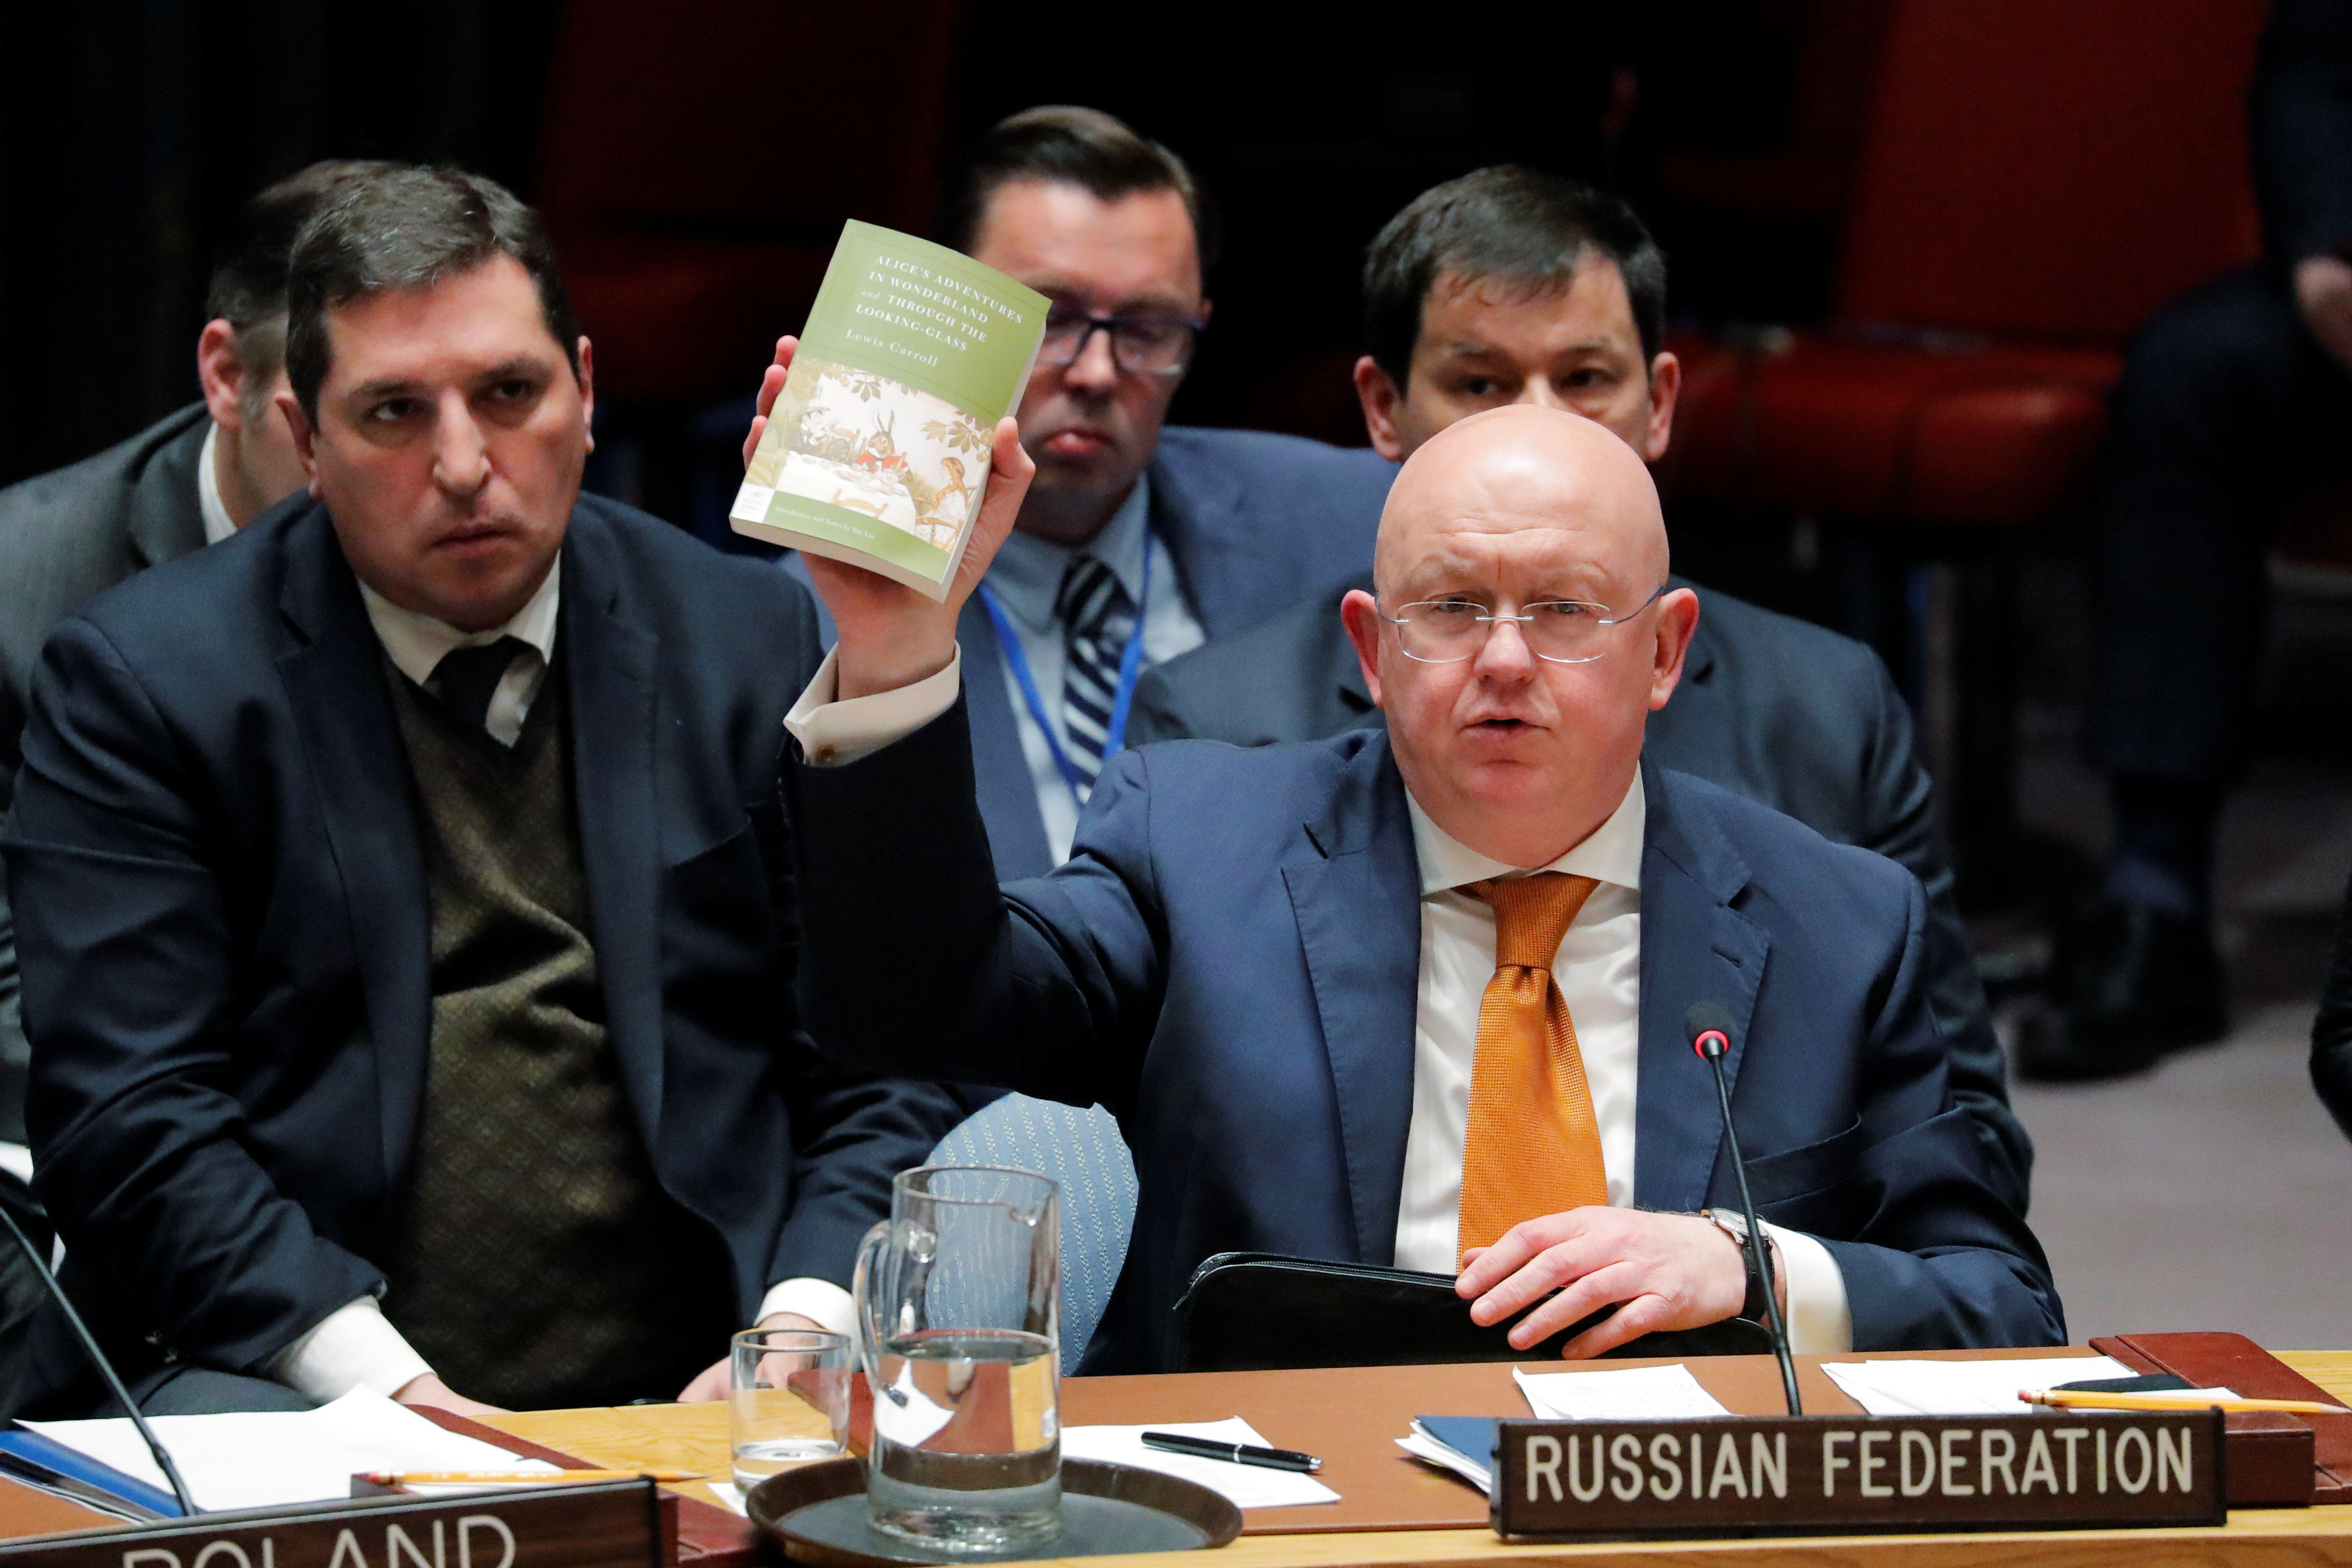 Why Does Russia Have More Than 20 Explanations For The Salisbury